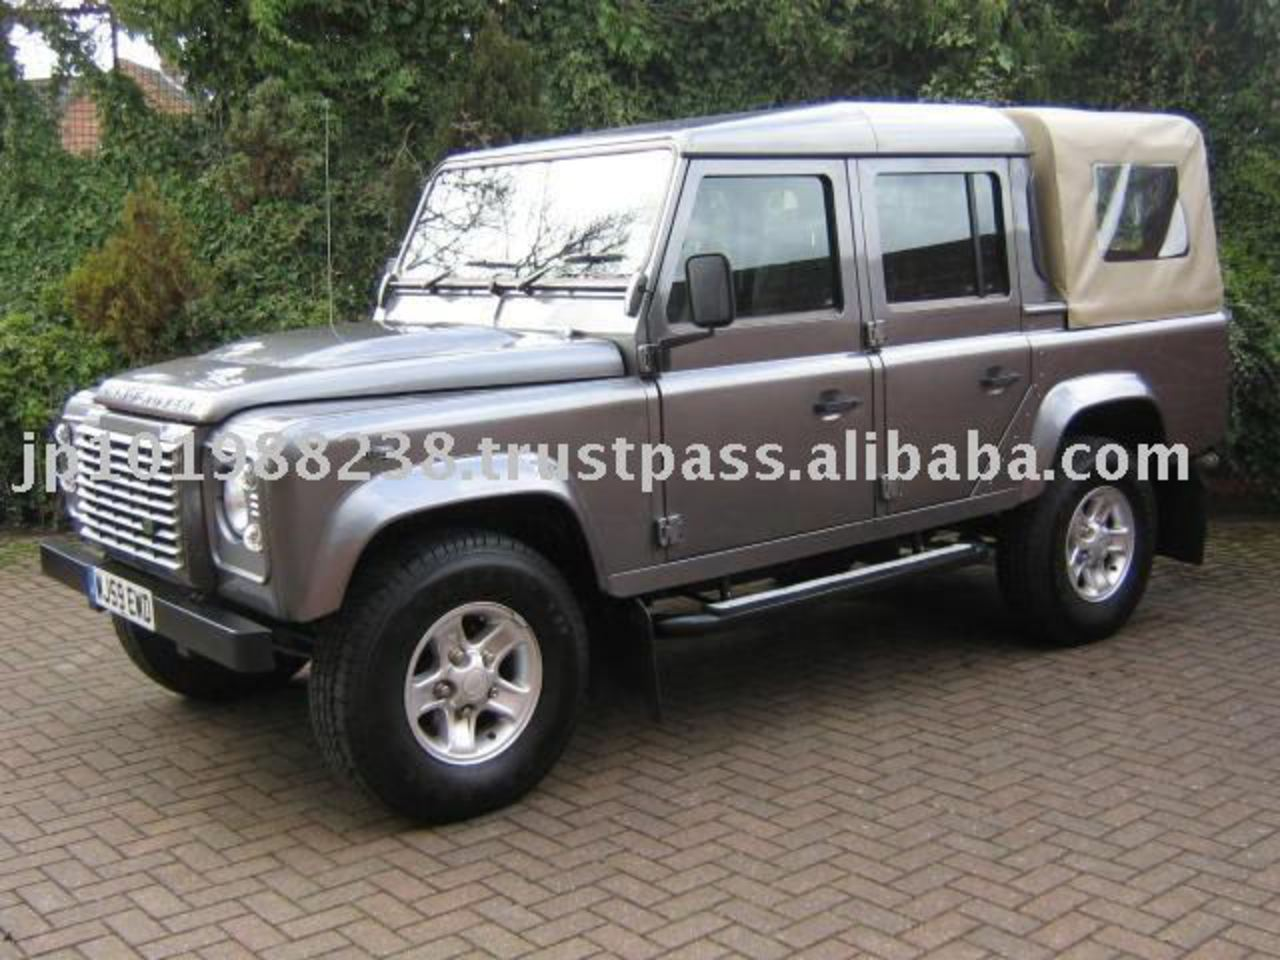 topworldauto photos of land rover defender 110 pick up photo galleries. Black Bedroom Furniture Sets. Home Design Ideas